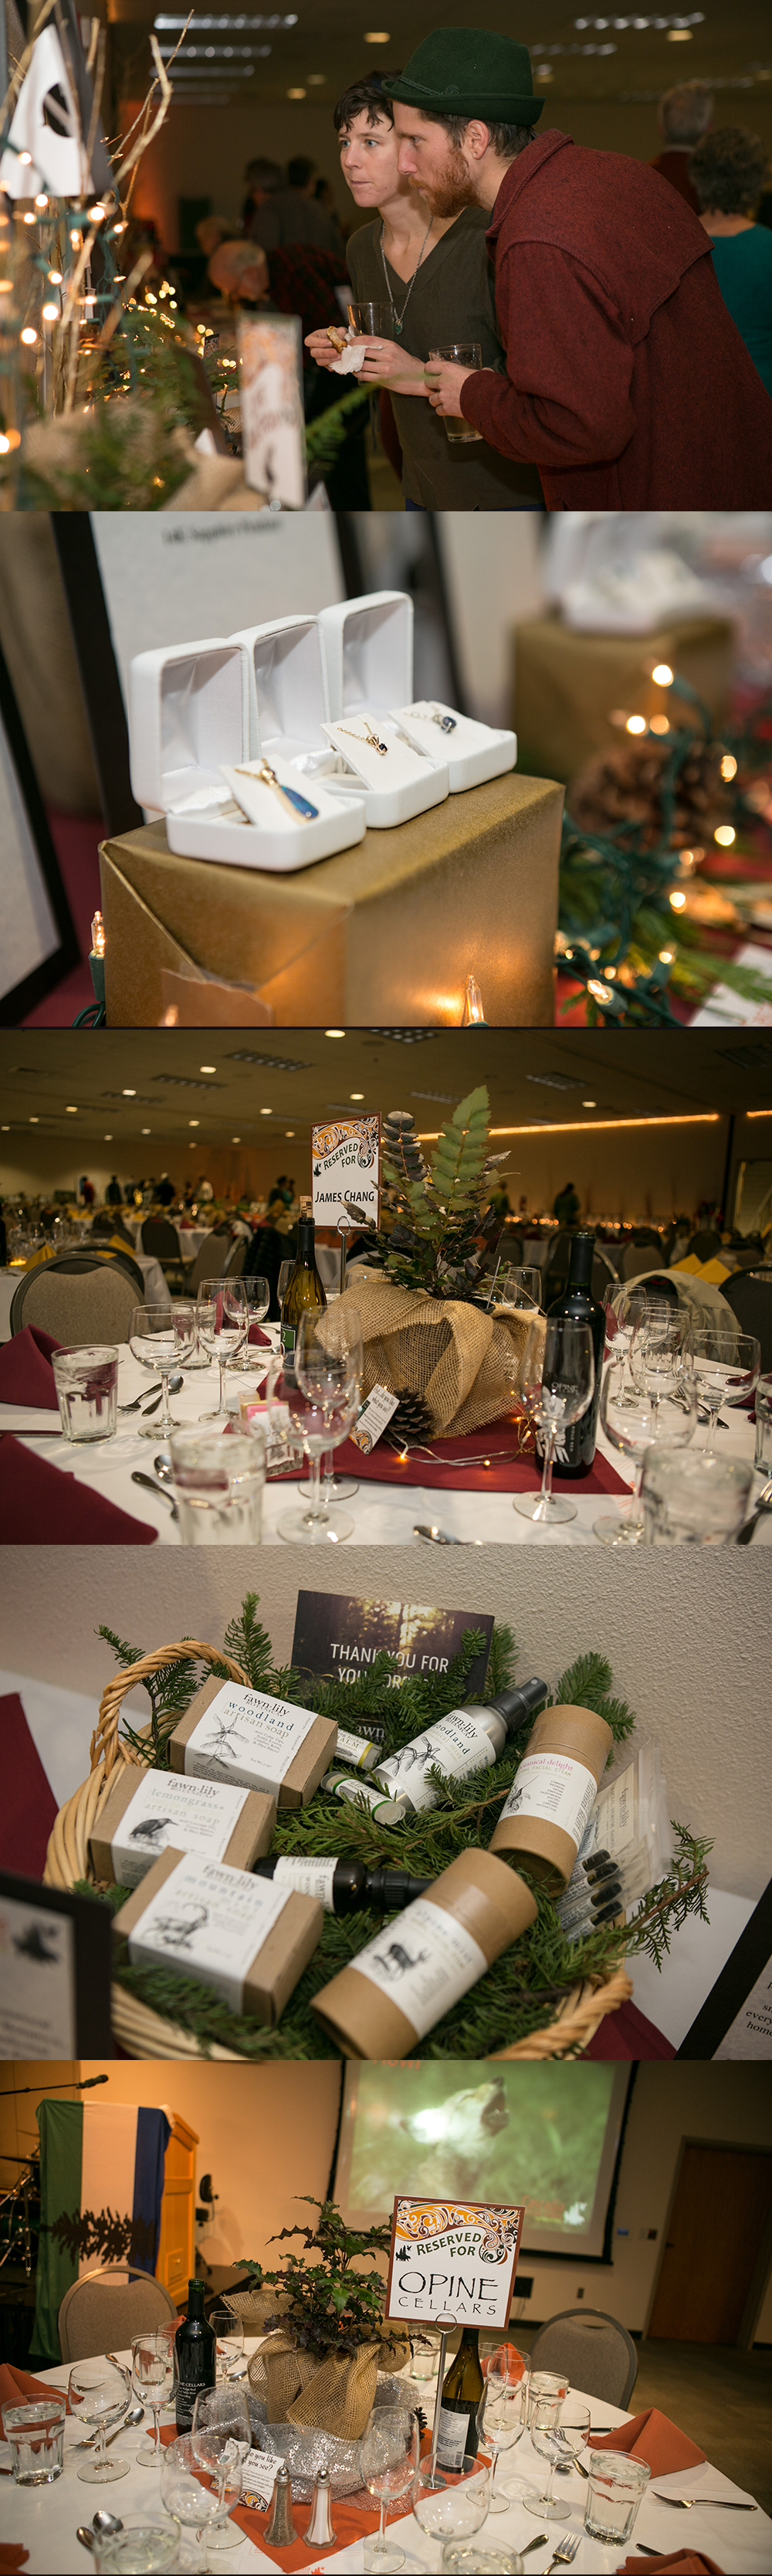 Photos from the 2015 Wonderland Auction (photos by Wendy Gregory Photography).